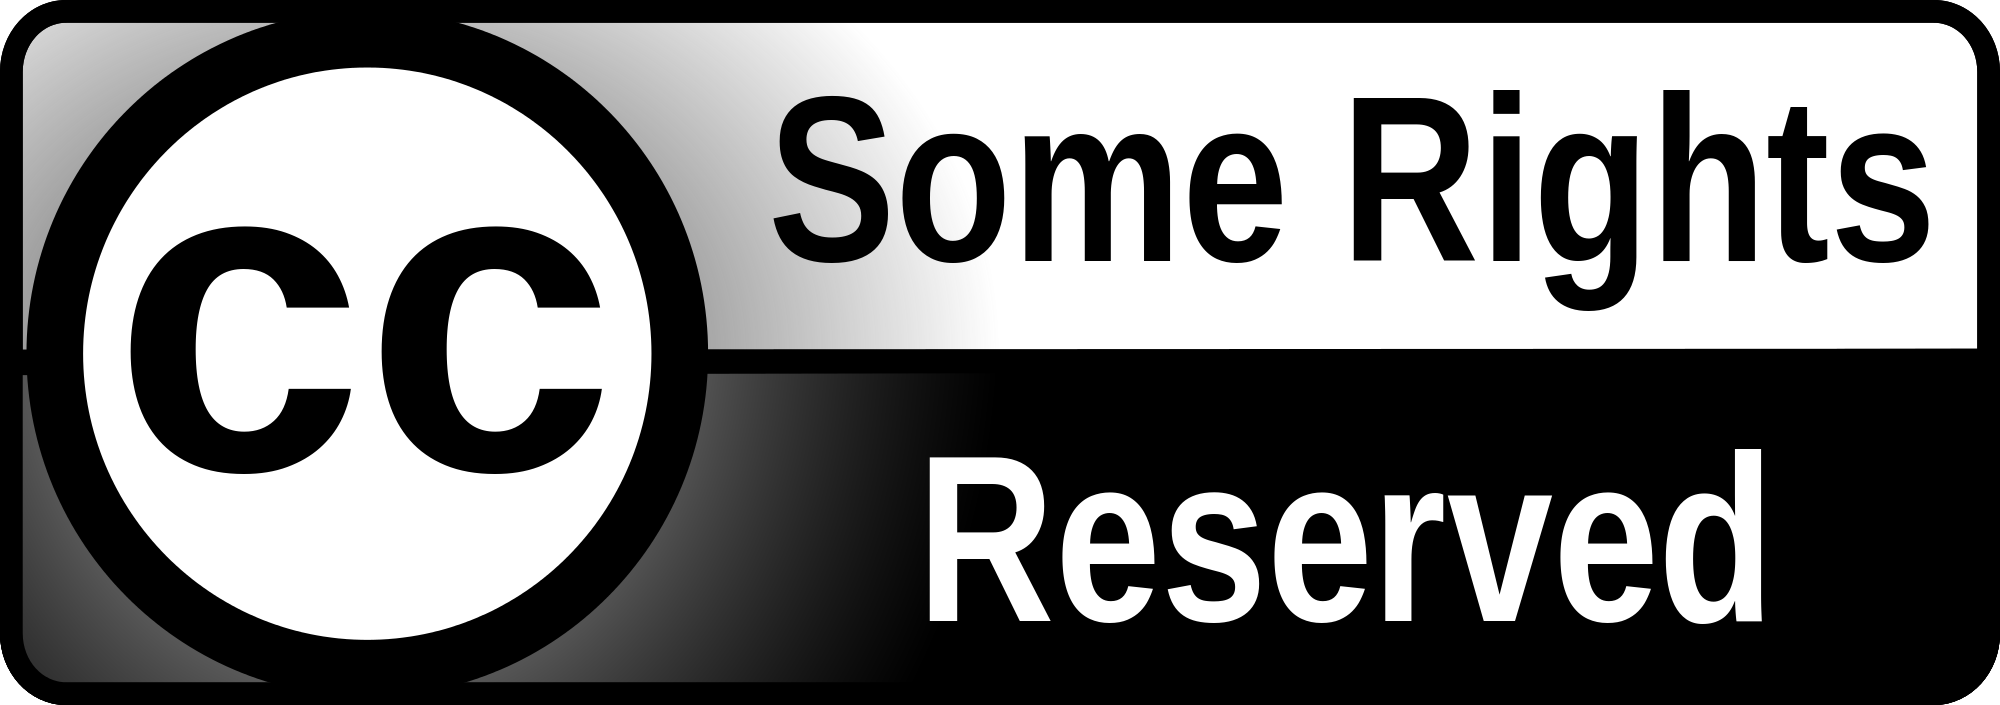 creative-commons-some-rights-reserved.png